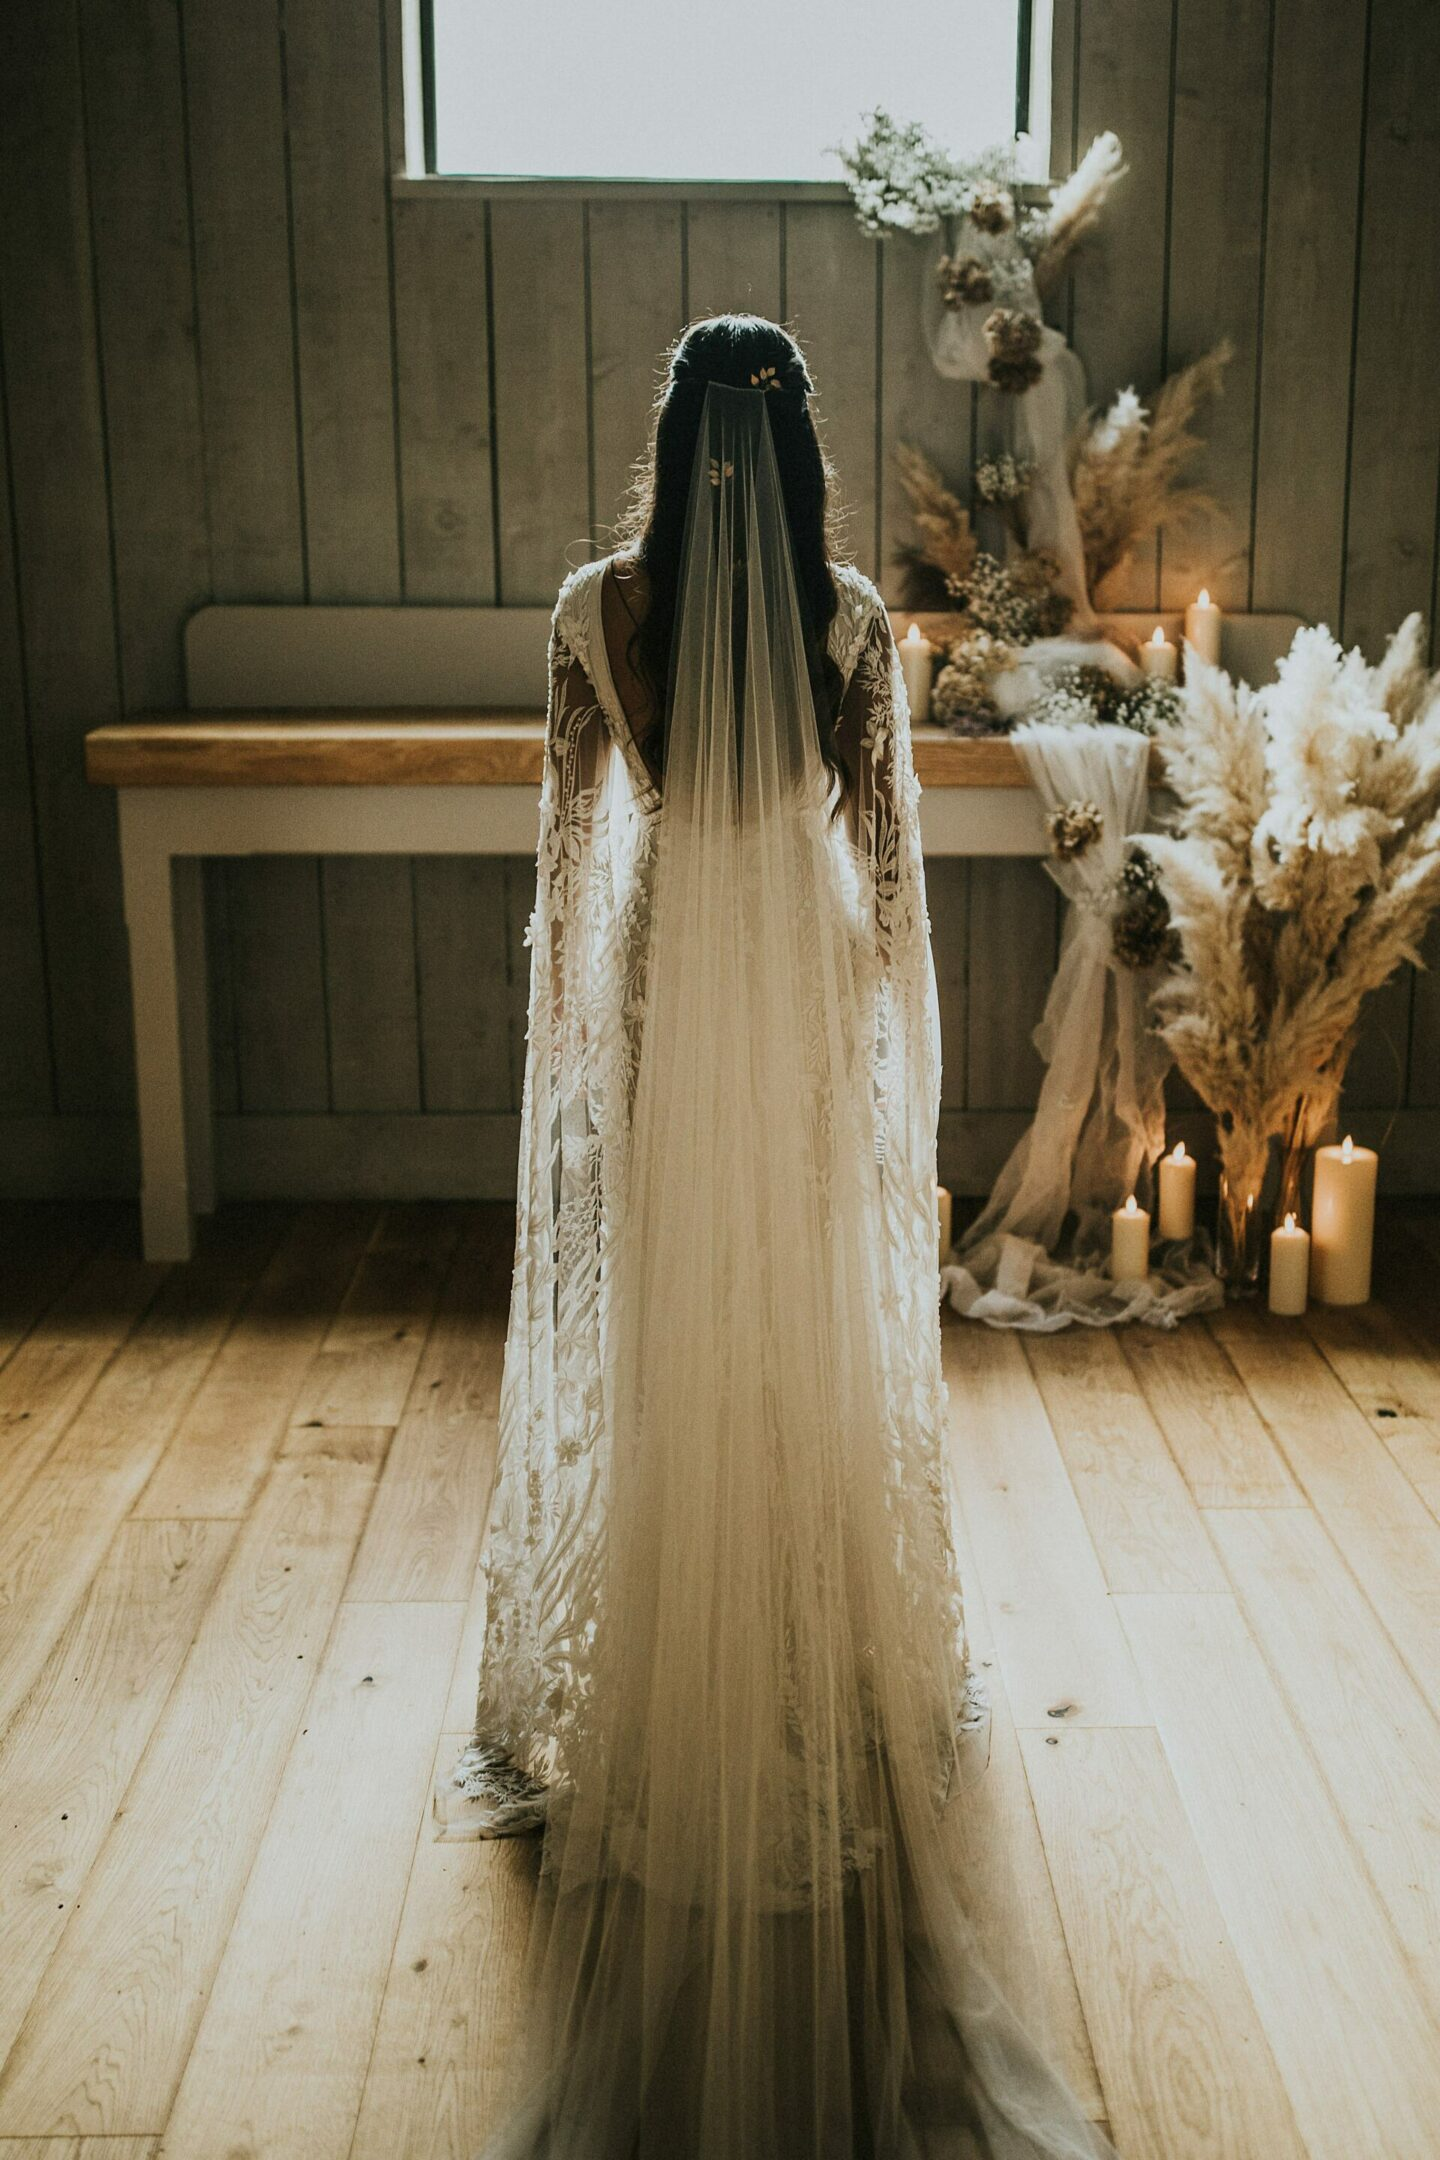 Boho Lux wedding inspo by Wonderful Events